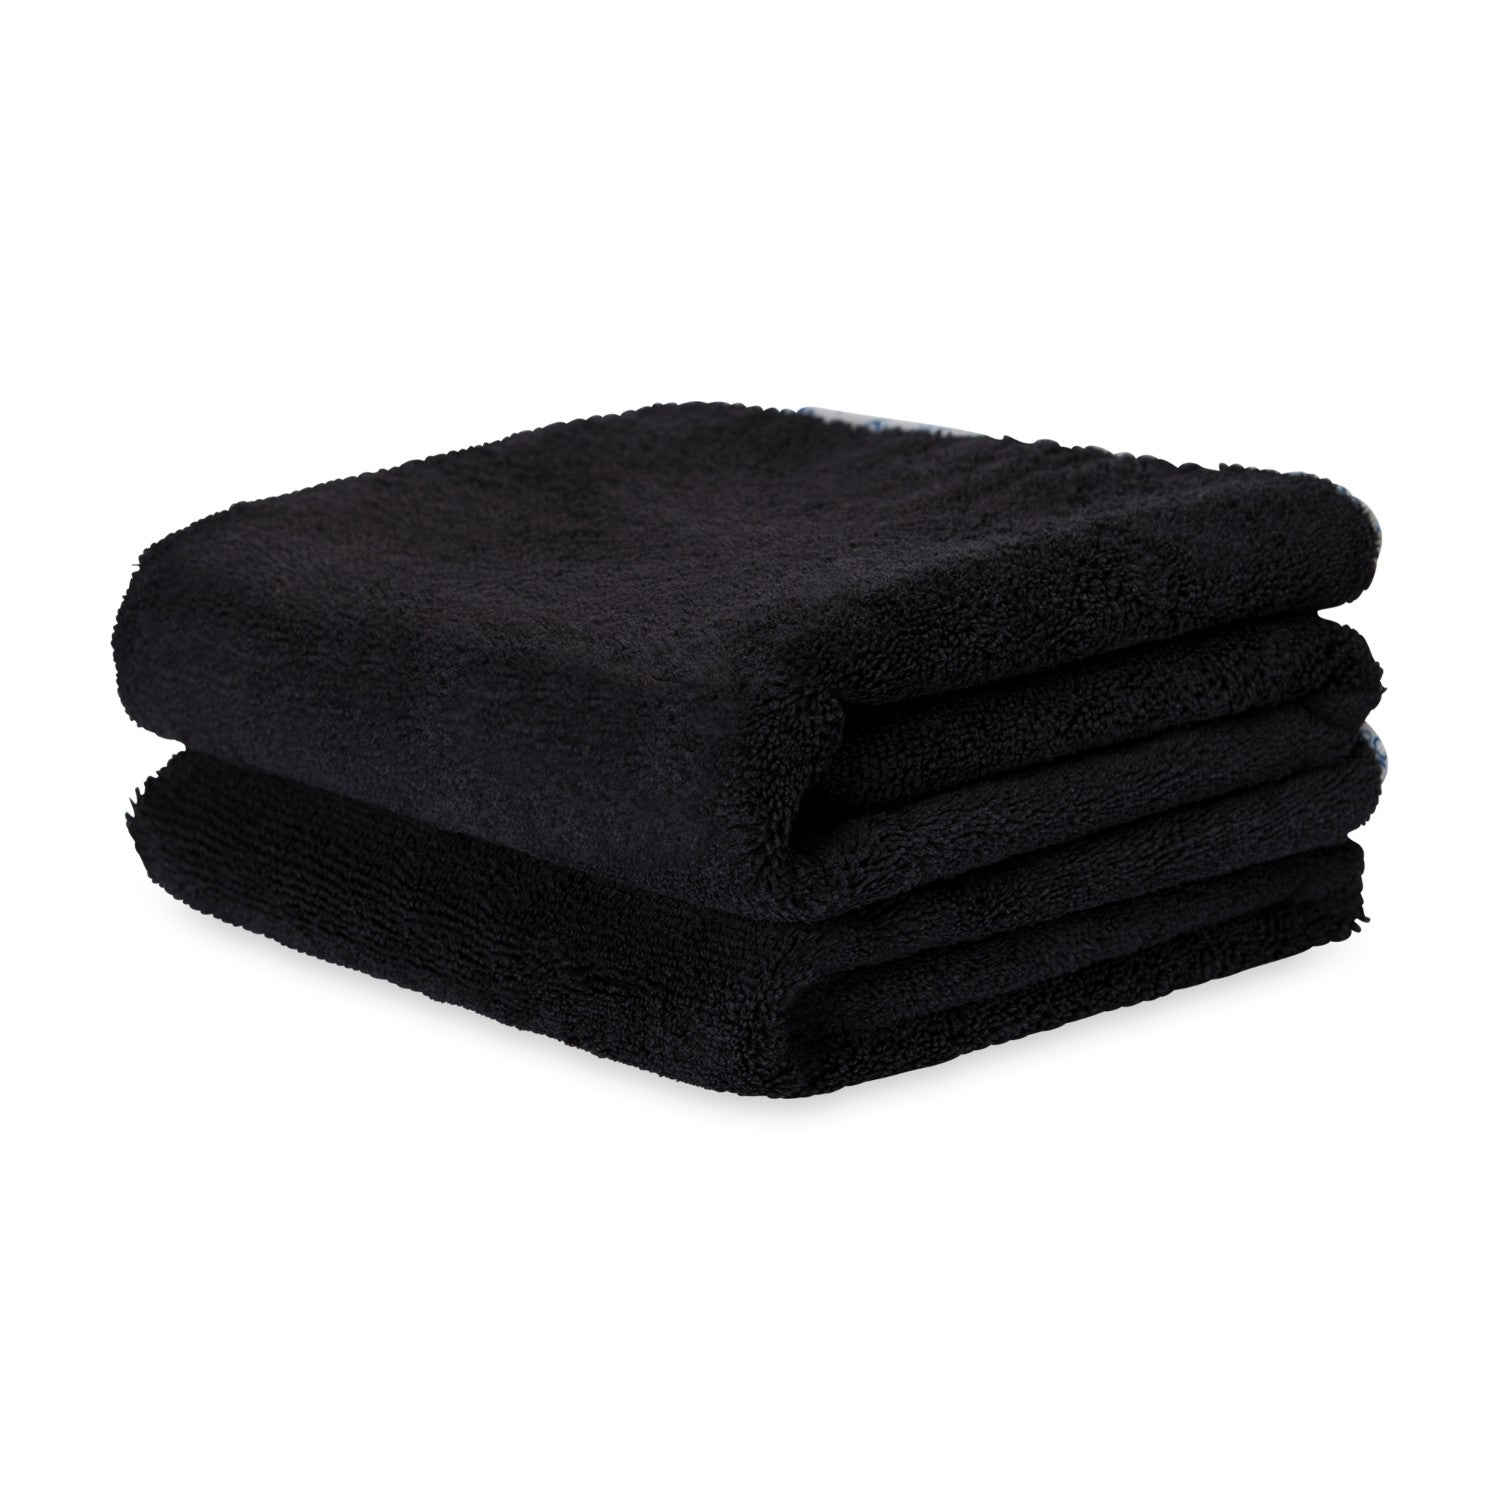 Black Microfiber Car Drying Towel Great For Tires